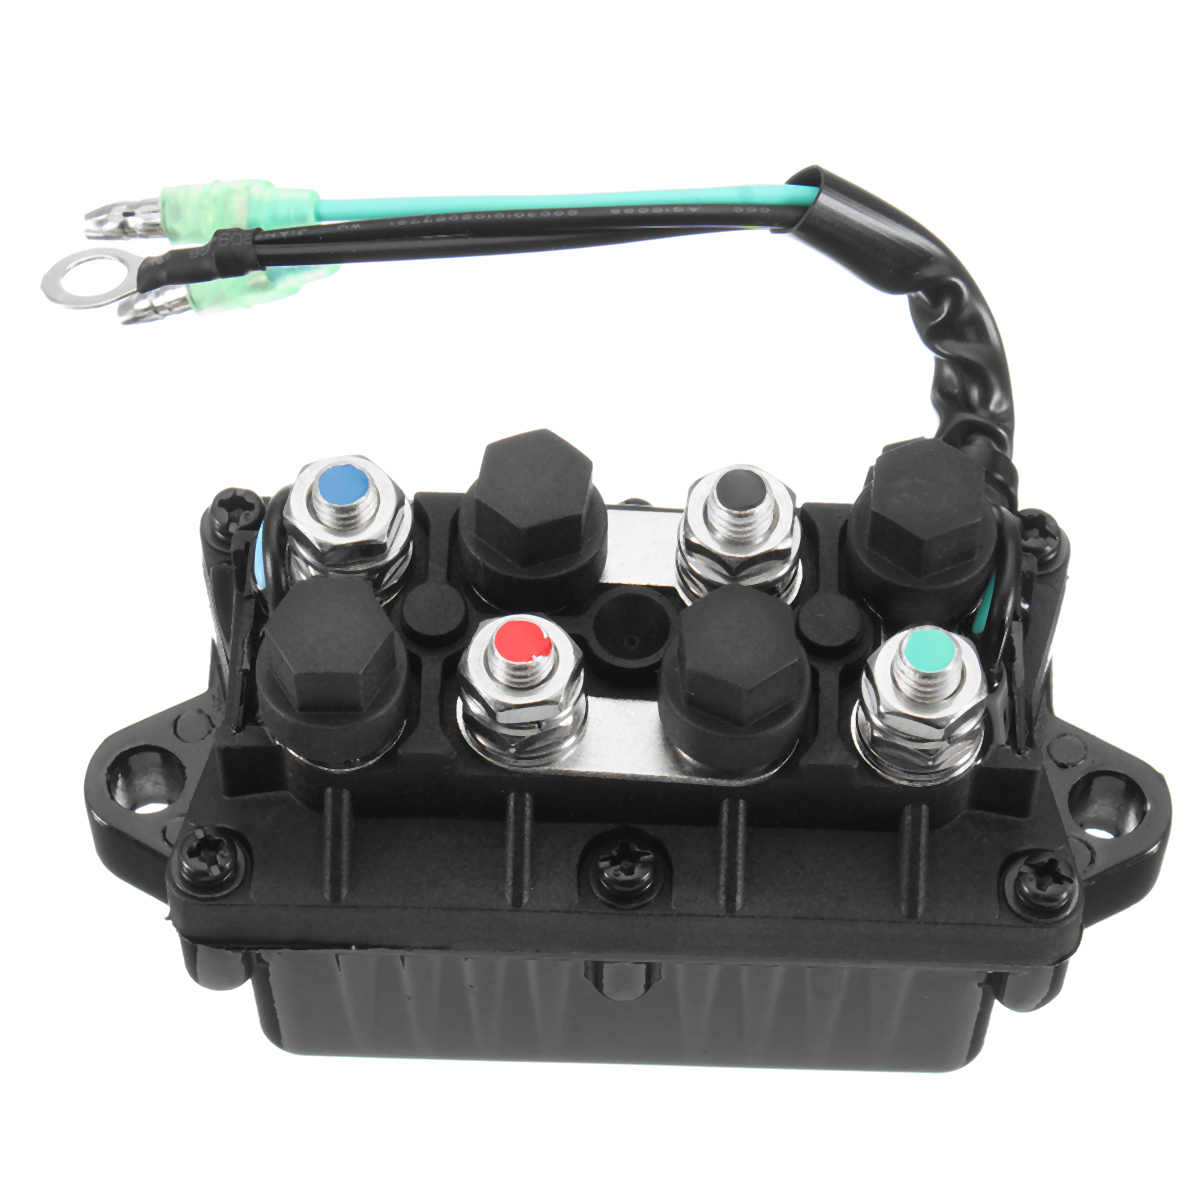 Boat Motor Power Trim & Relay 2 Pin For Yamaha Outboard 4